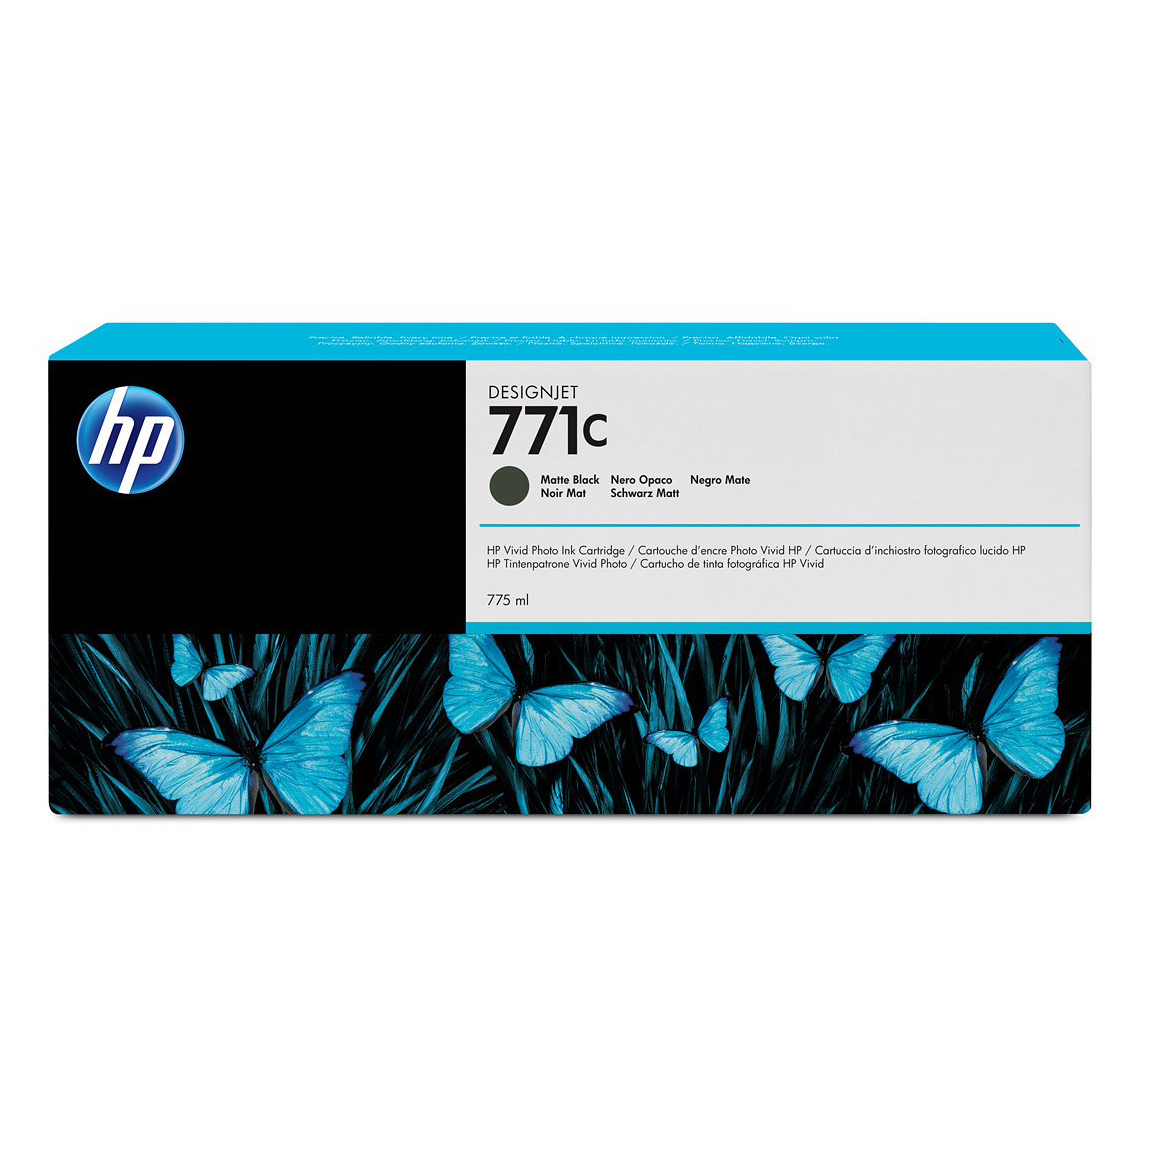 HP 771C Ink Cartridge - Matte Black - 775ml - for Z6200 & Z6600 & Z6800 Printers - B6Y07A